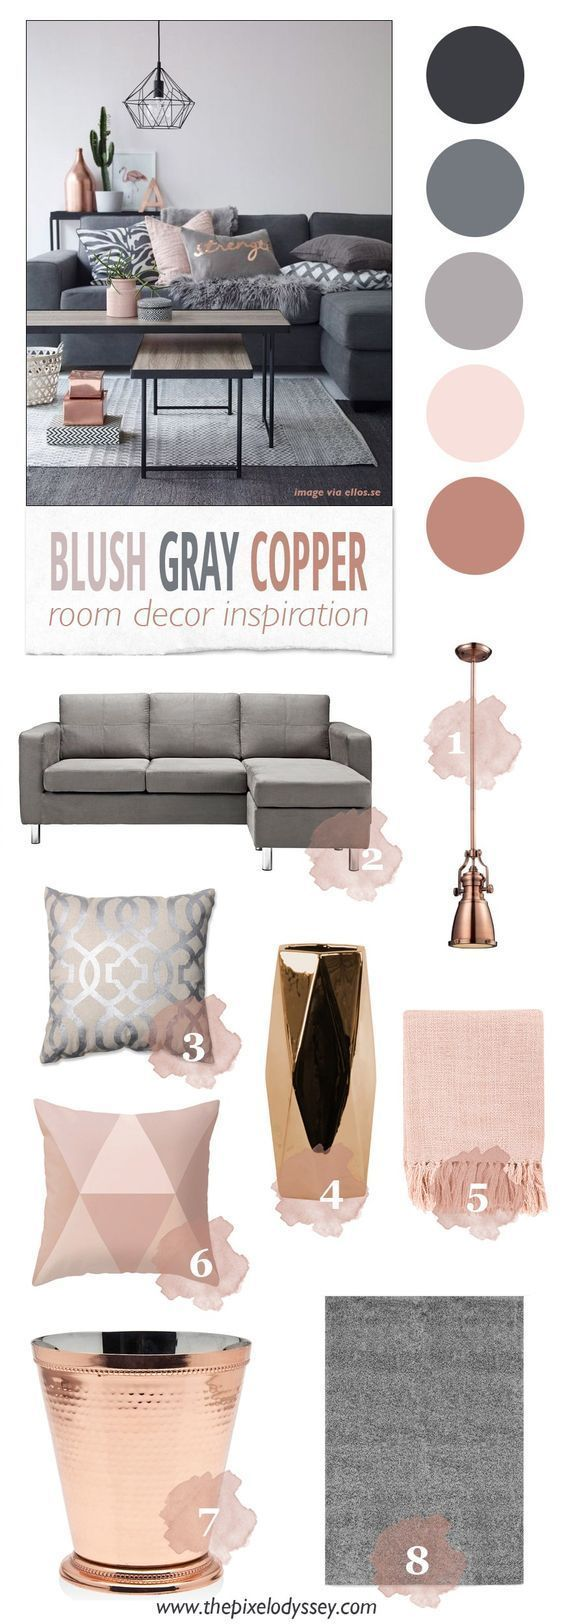 Blush Gray Copper Room Decor Inspiration! trendy accessories! copper decor, home decor, diy decor, bathroom, bedroom, living room, family room, kitchen, dining room, blue decor, gray decor, pink decor, apartment decor, diy home decor, chic decor, modern d